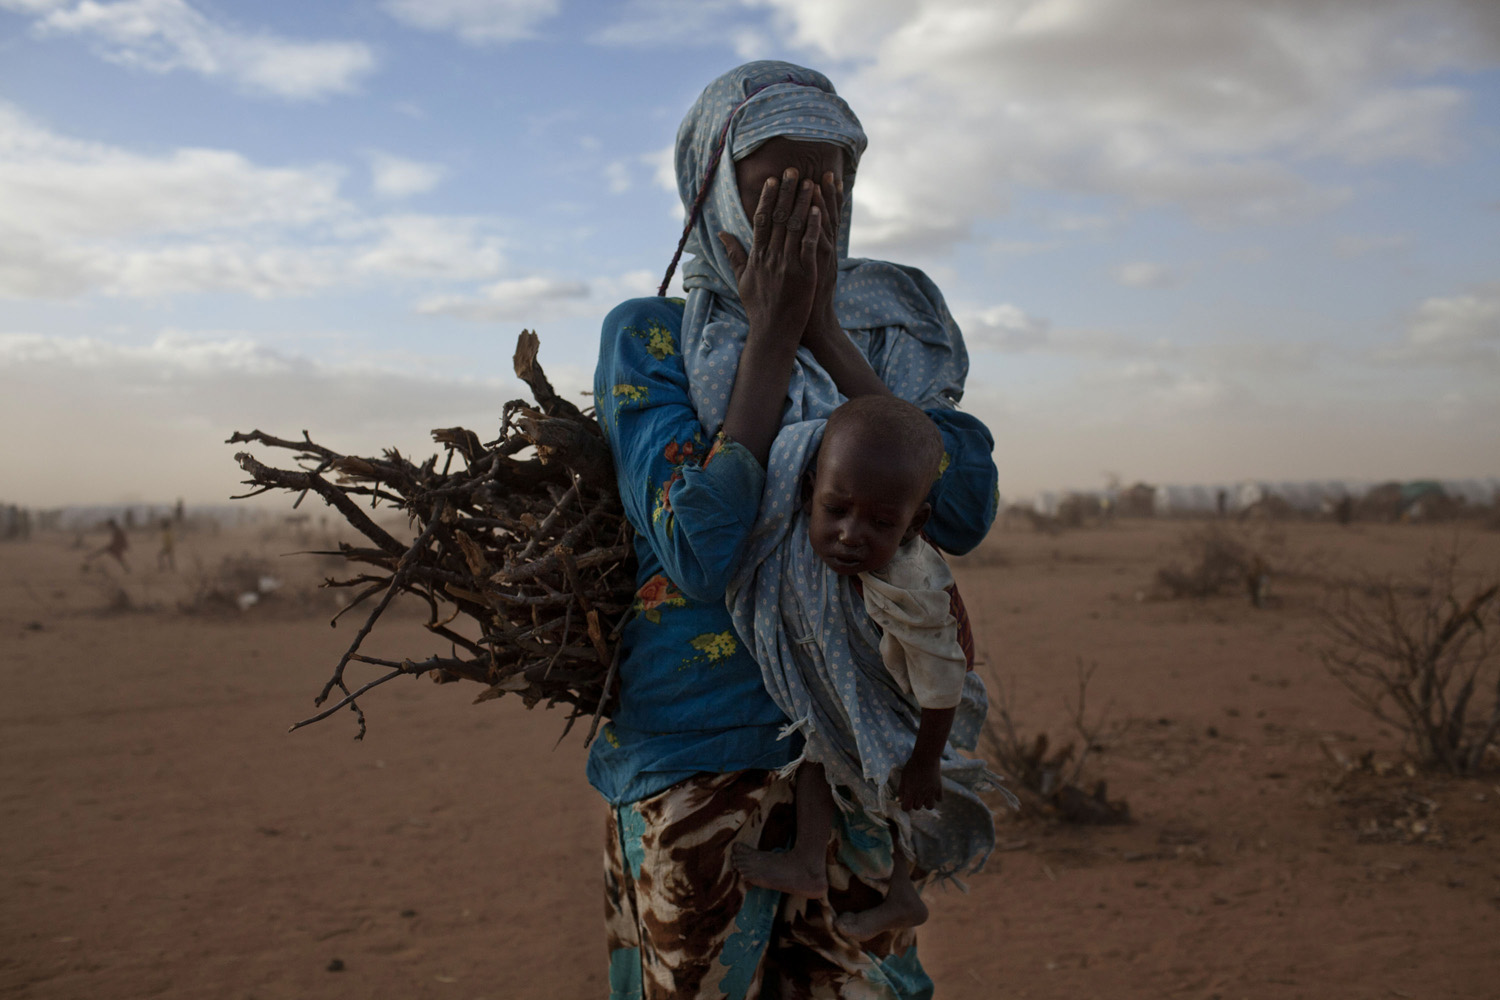 August 4, 2011. A refugee woman from Somalia carries sticks along with her baby in a new area of Dadaab refugee camp in Kenya.